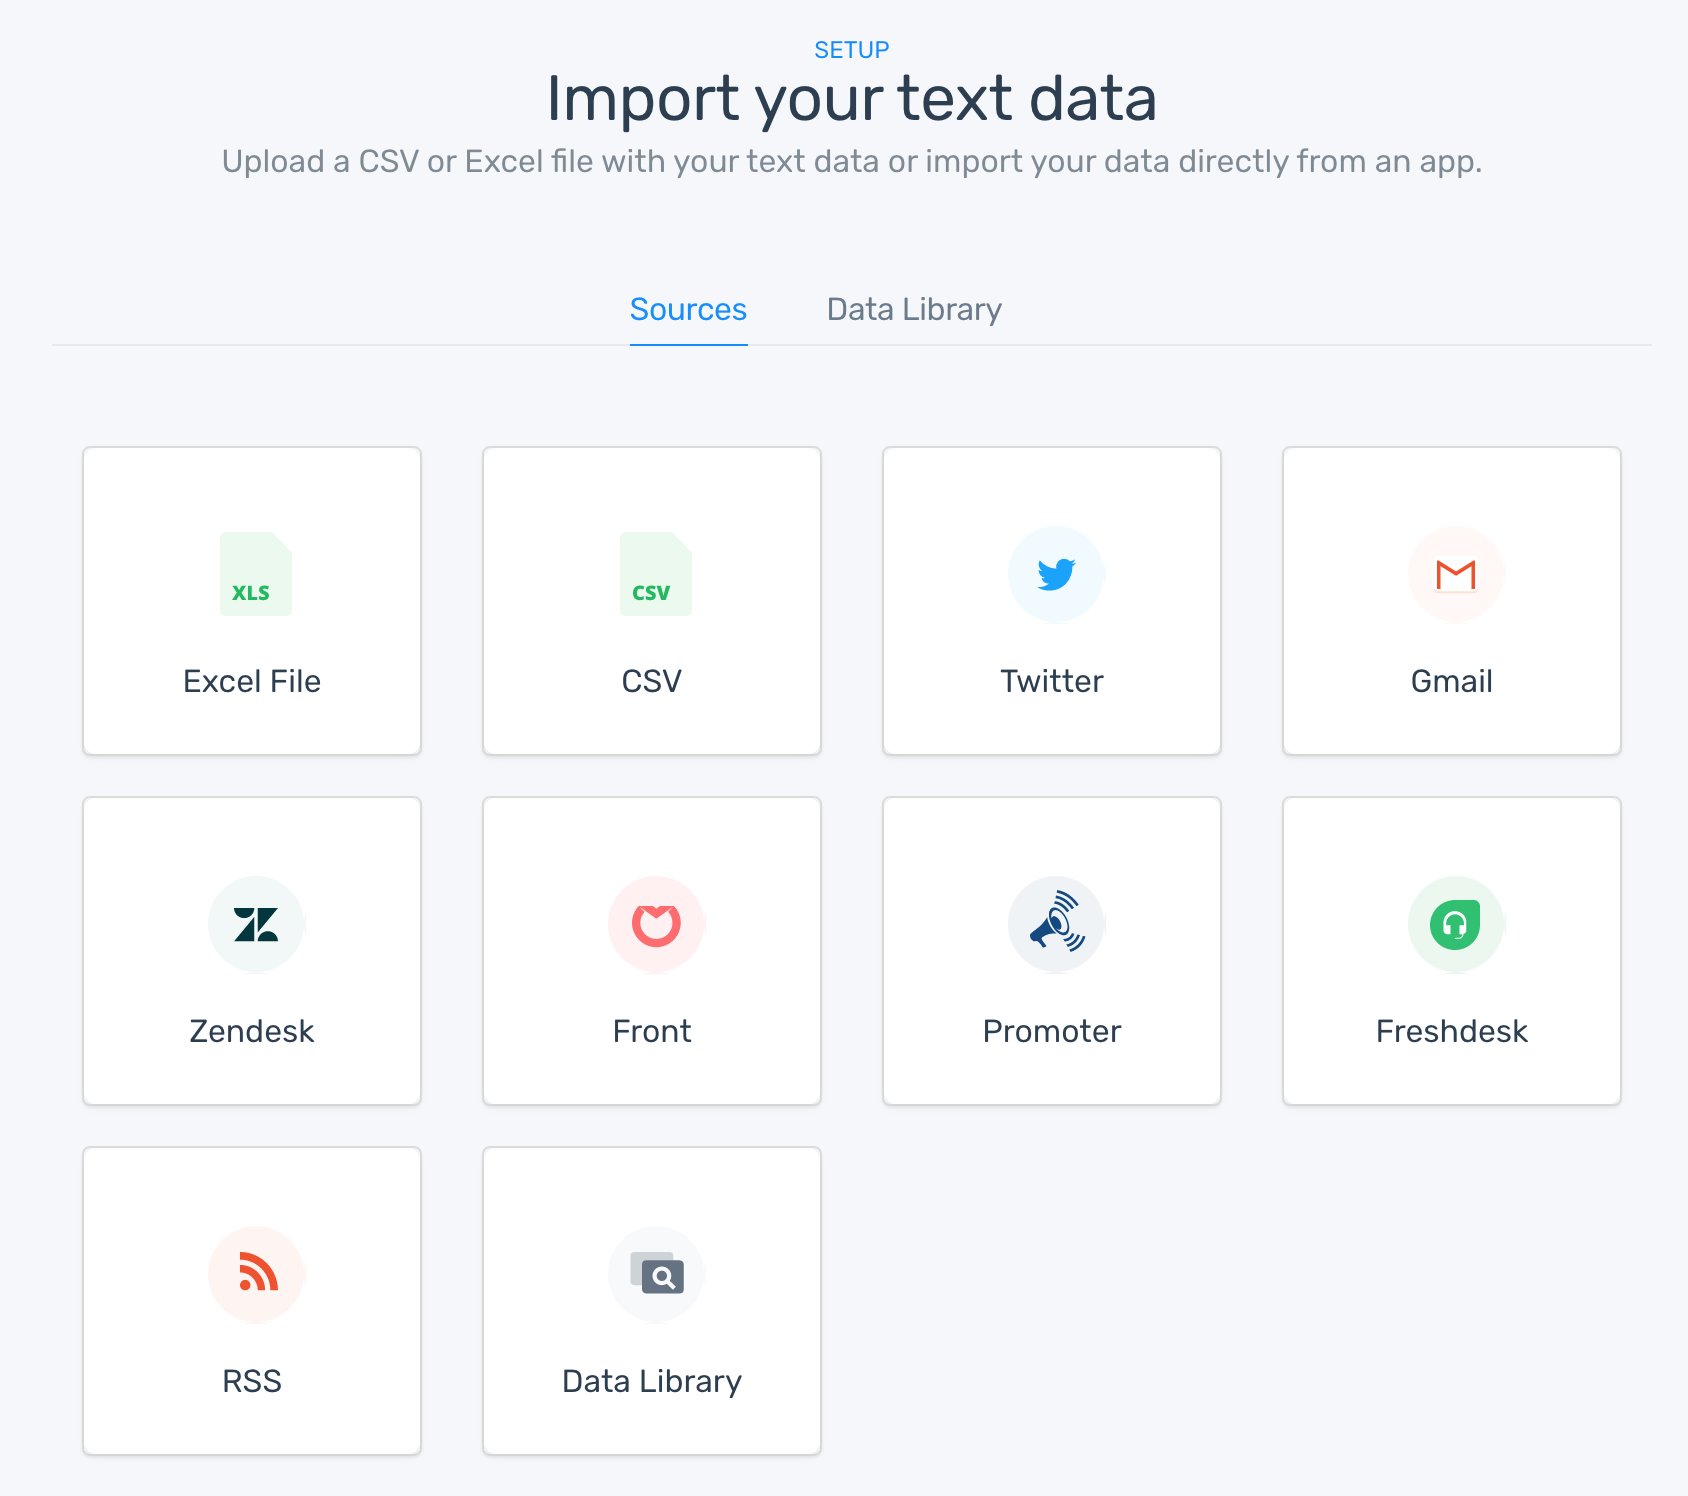 Sources that you can import data from, including Excel, CSV, Twitter, and Zendesk.